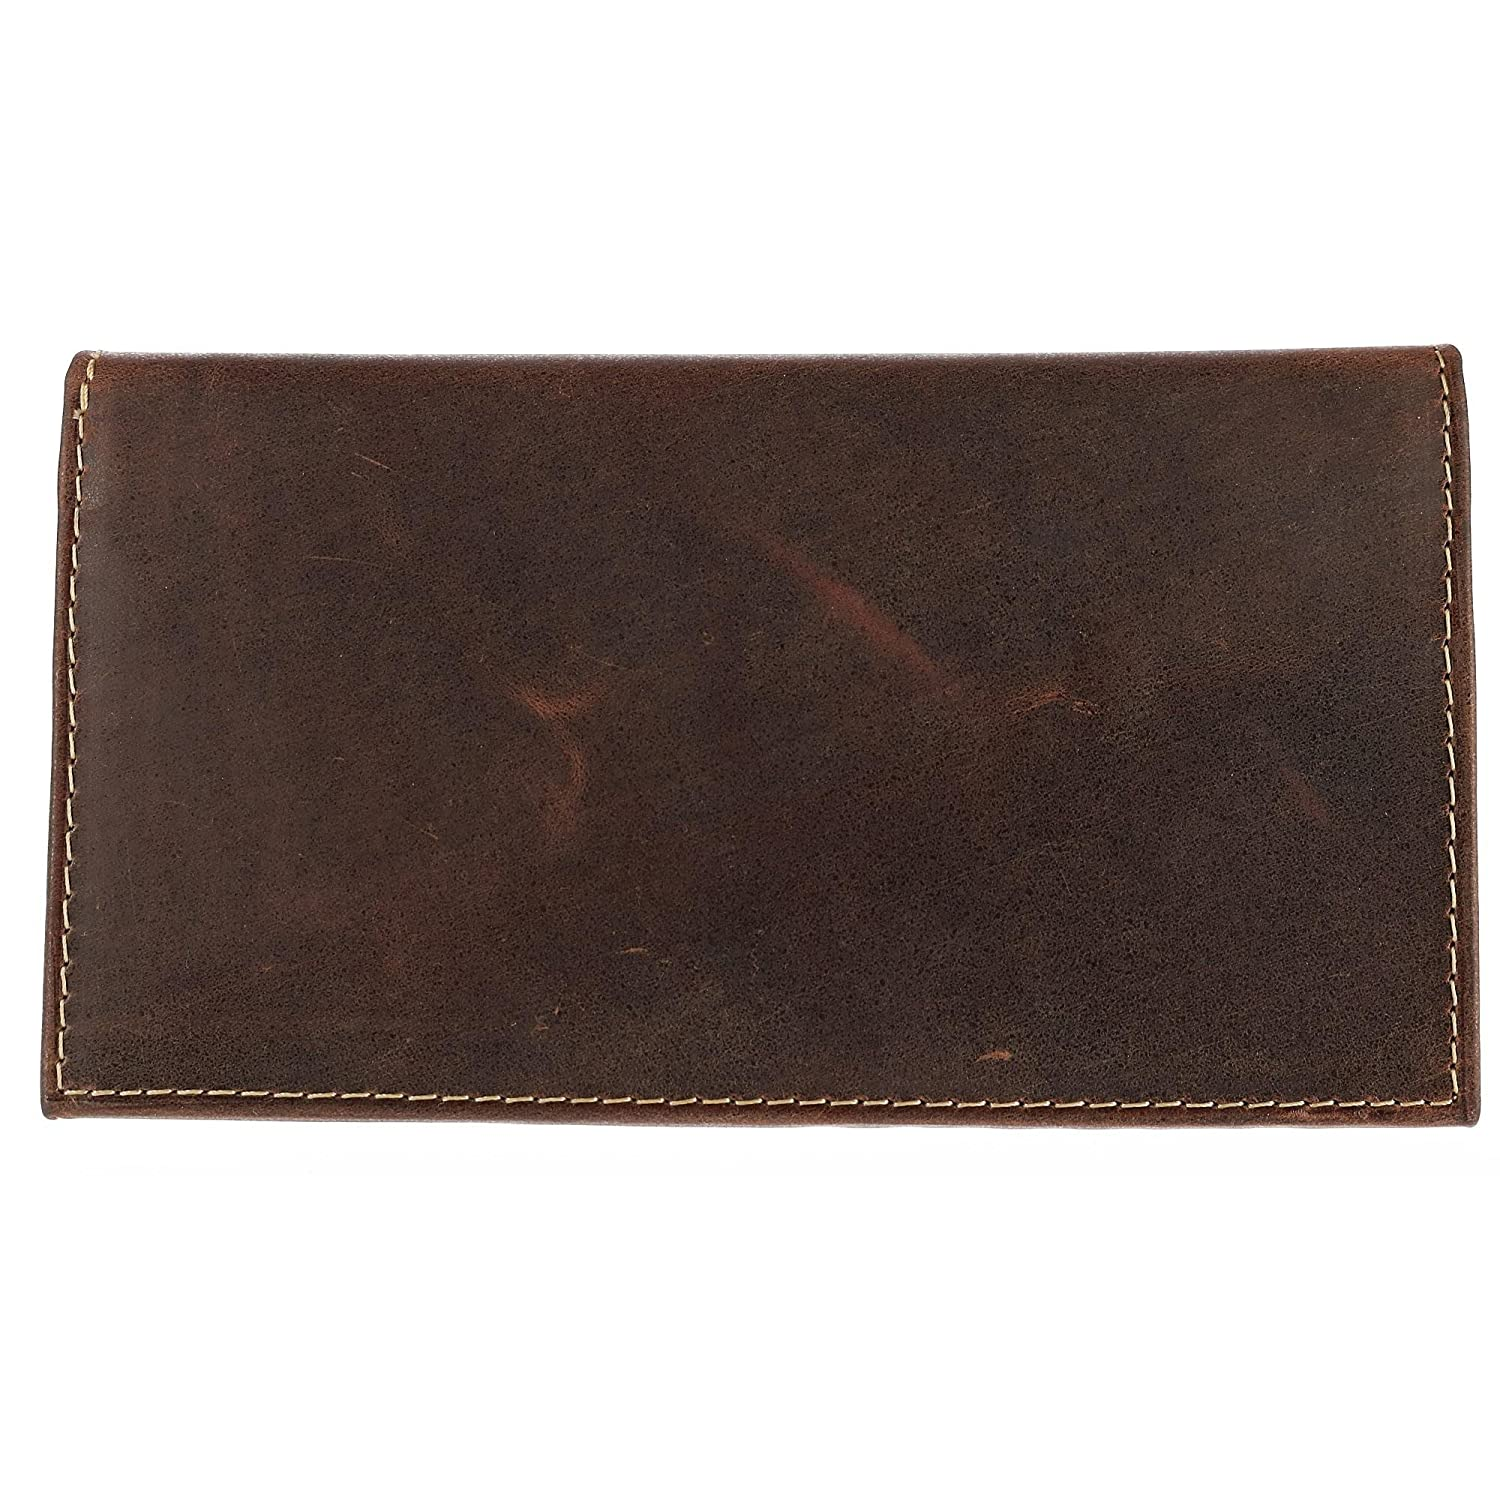 CTM Hunter Leather Distressed Checkbook Cover, Brown CL-54357-BRN